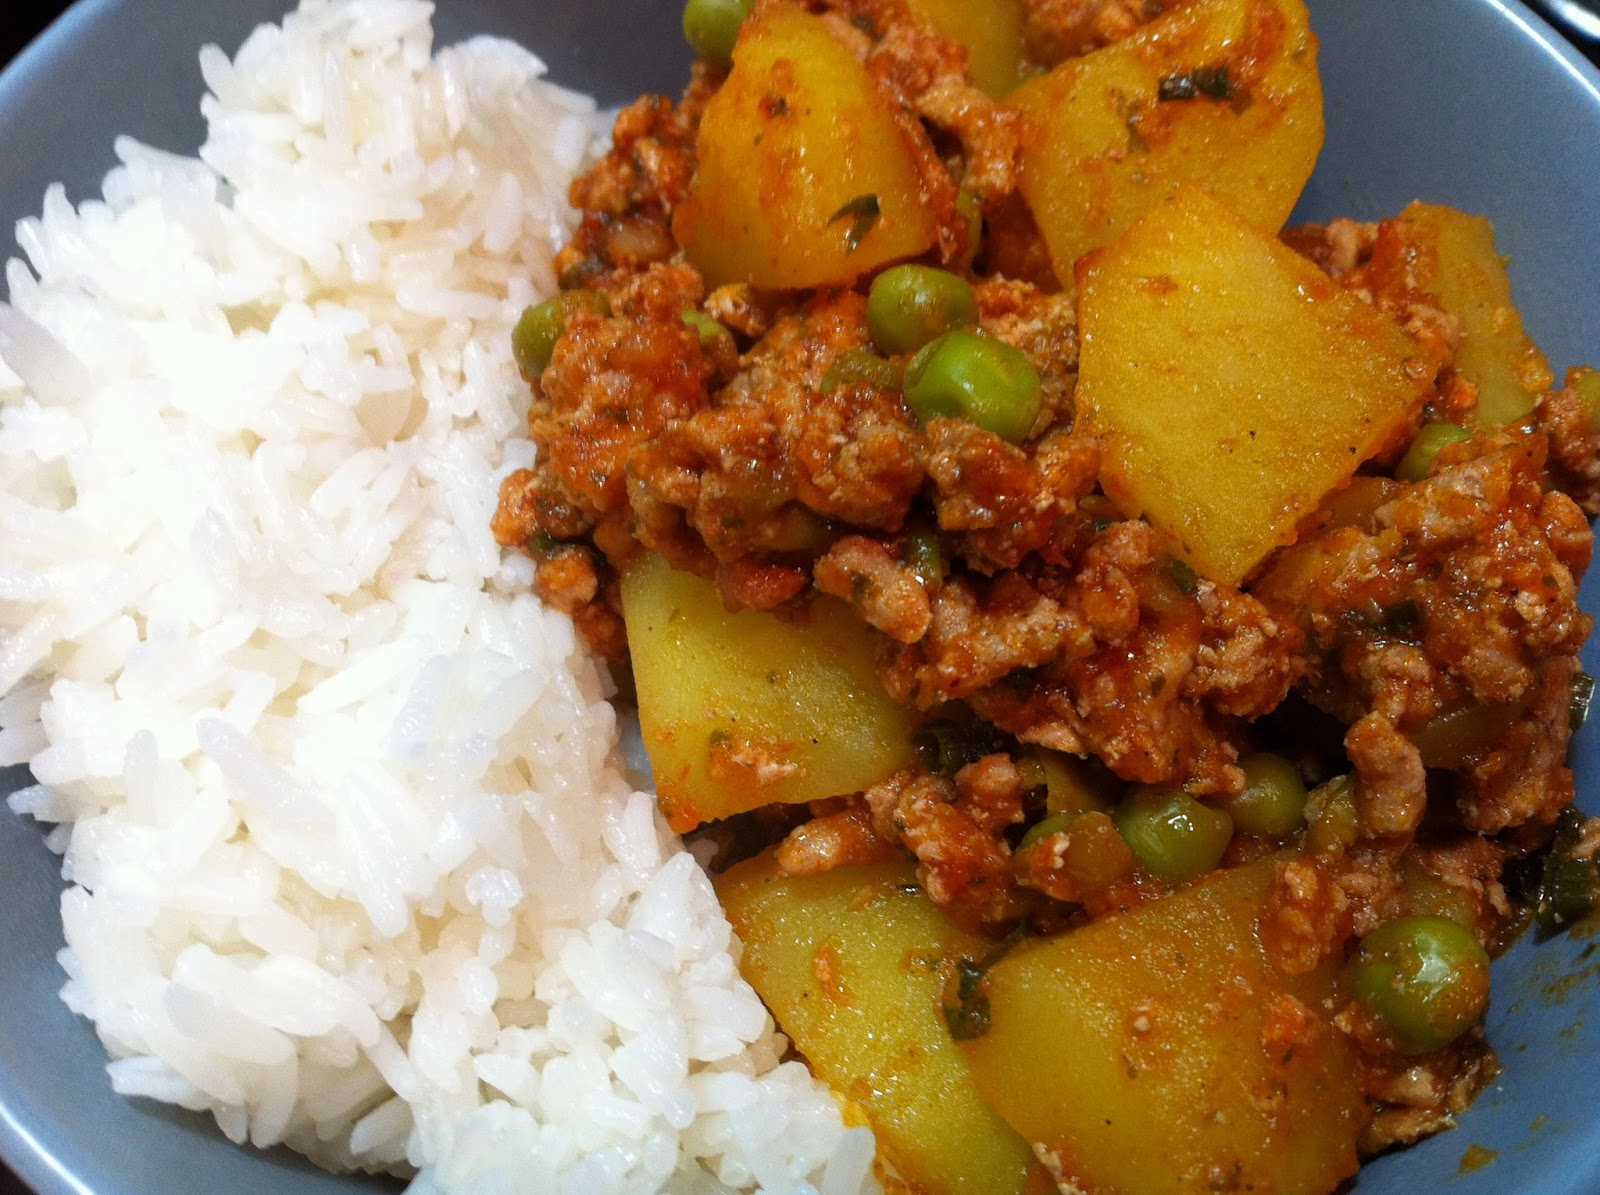 Cooking with SAHD: Indian Spiced Ground Turkey with Potatoes and Peas